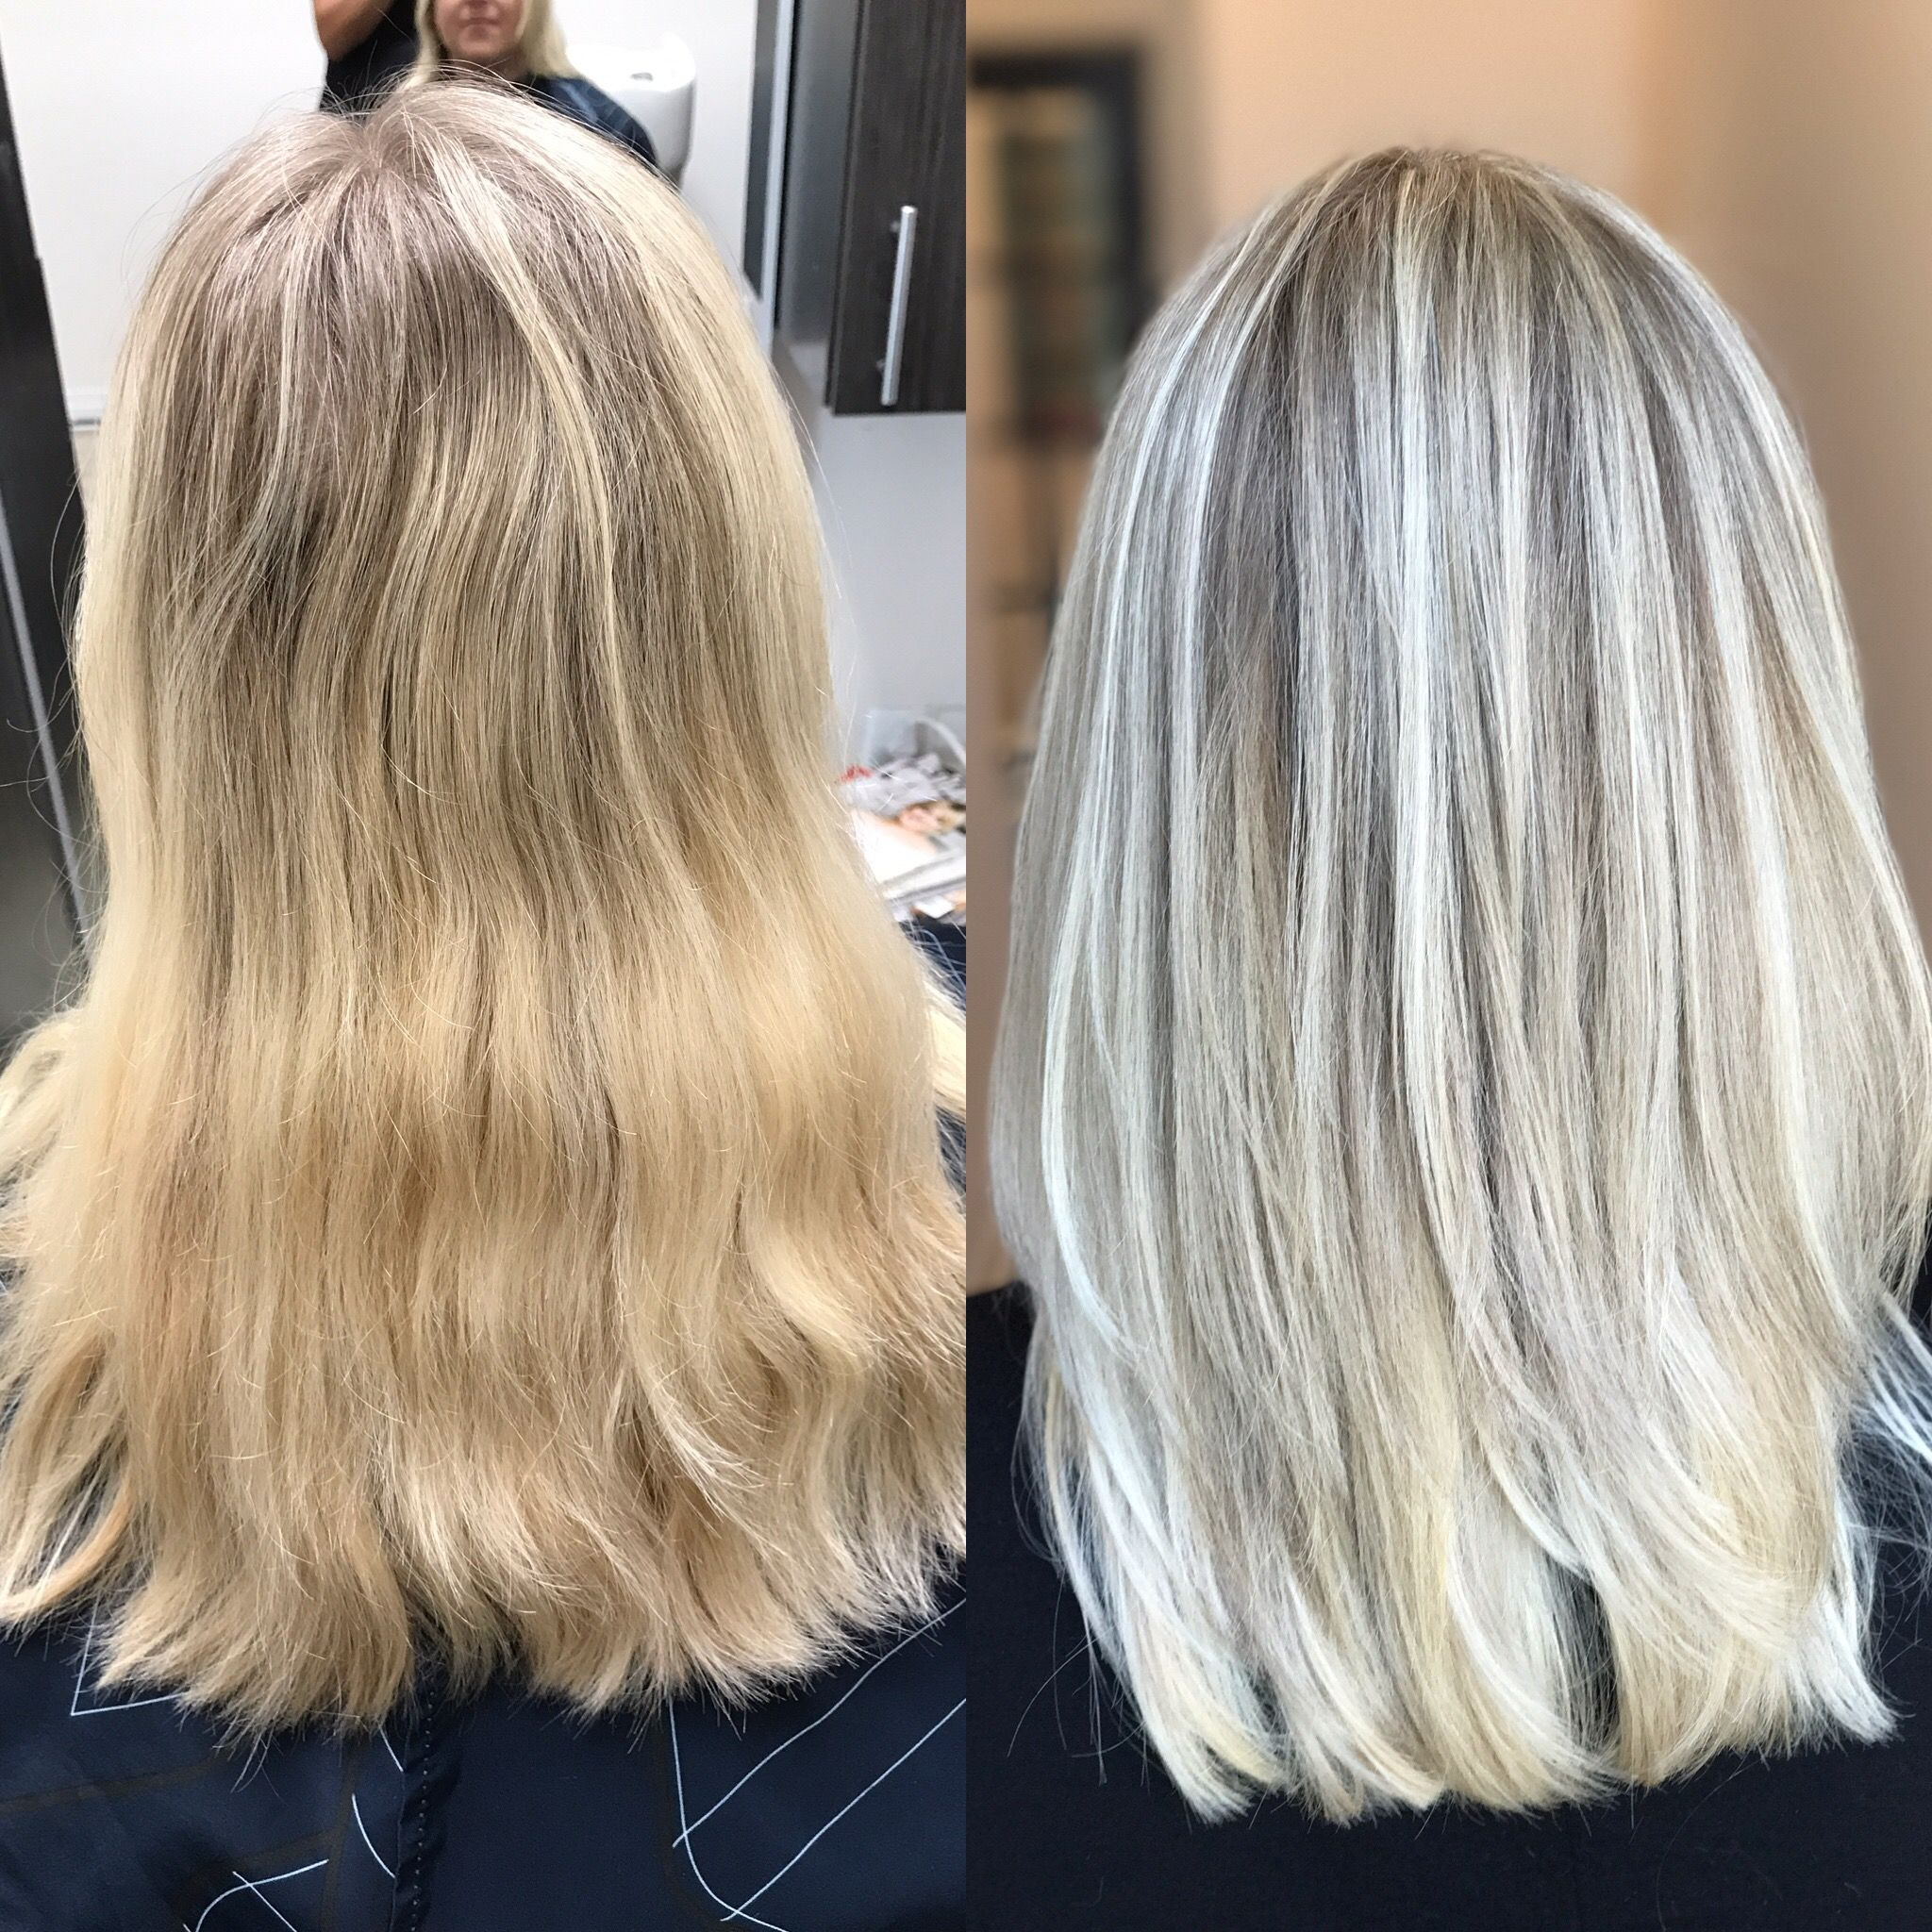 Golden Blonde To Icy Blonde With Lowlights Icy Blonde Hair